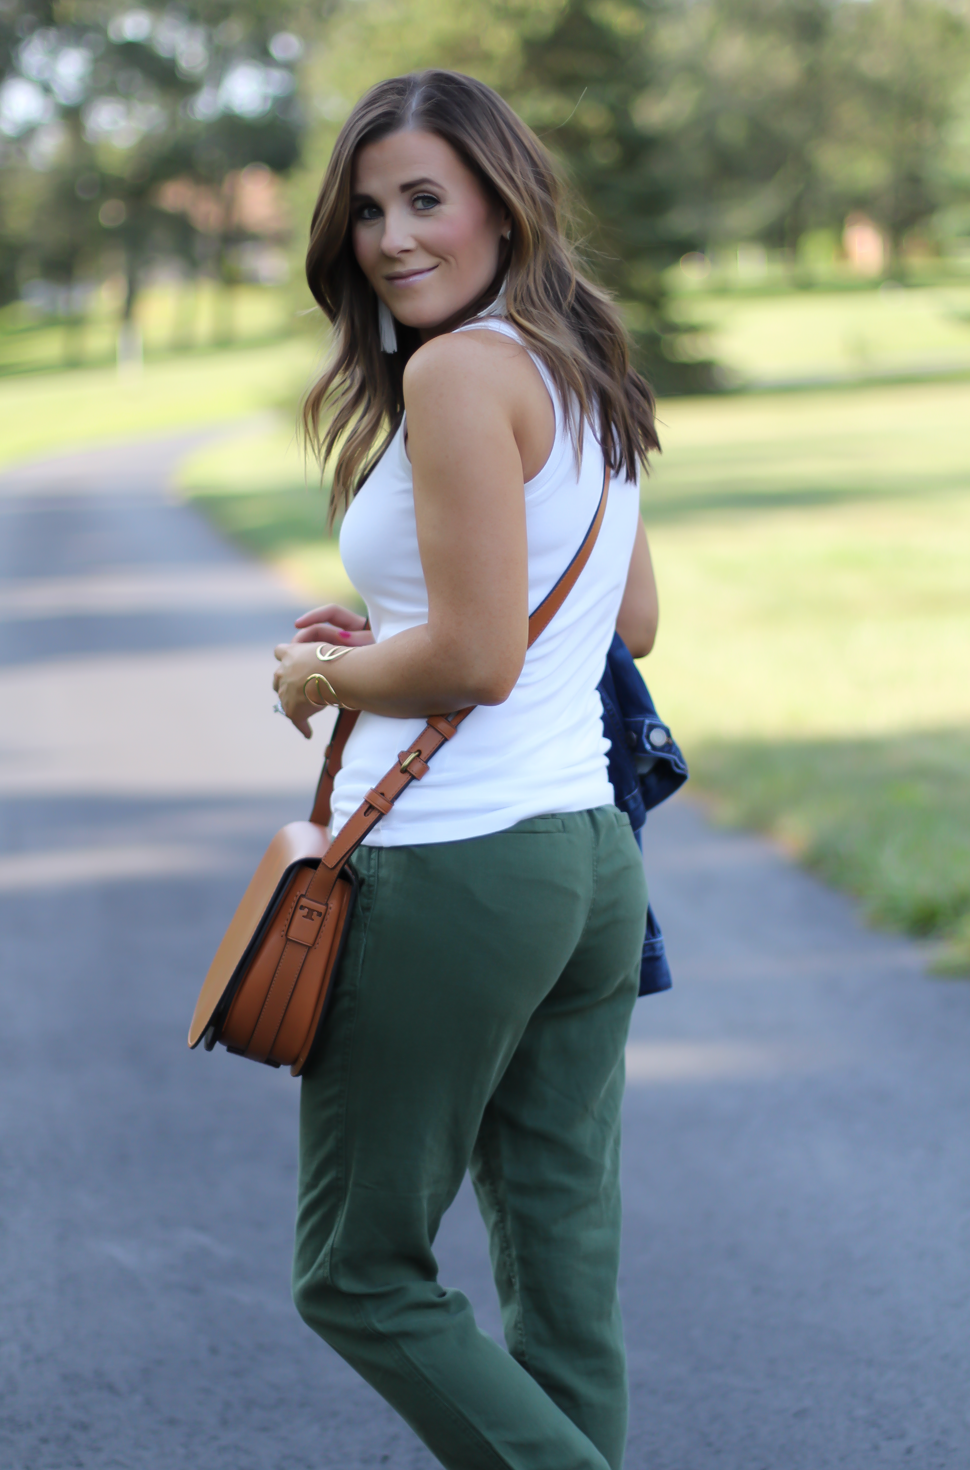 Army Green Joggers, White Sleeveless Shell Tee, Gladiator Sandals, Saddle Bag, J.Crew, tory Burch, Ancient Gladiator 17